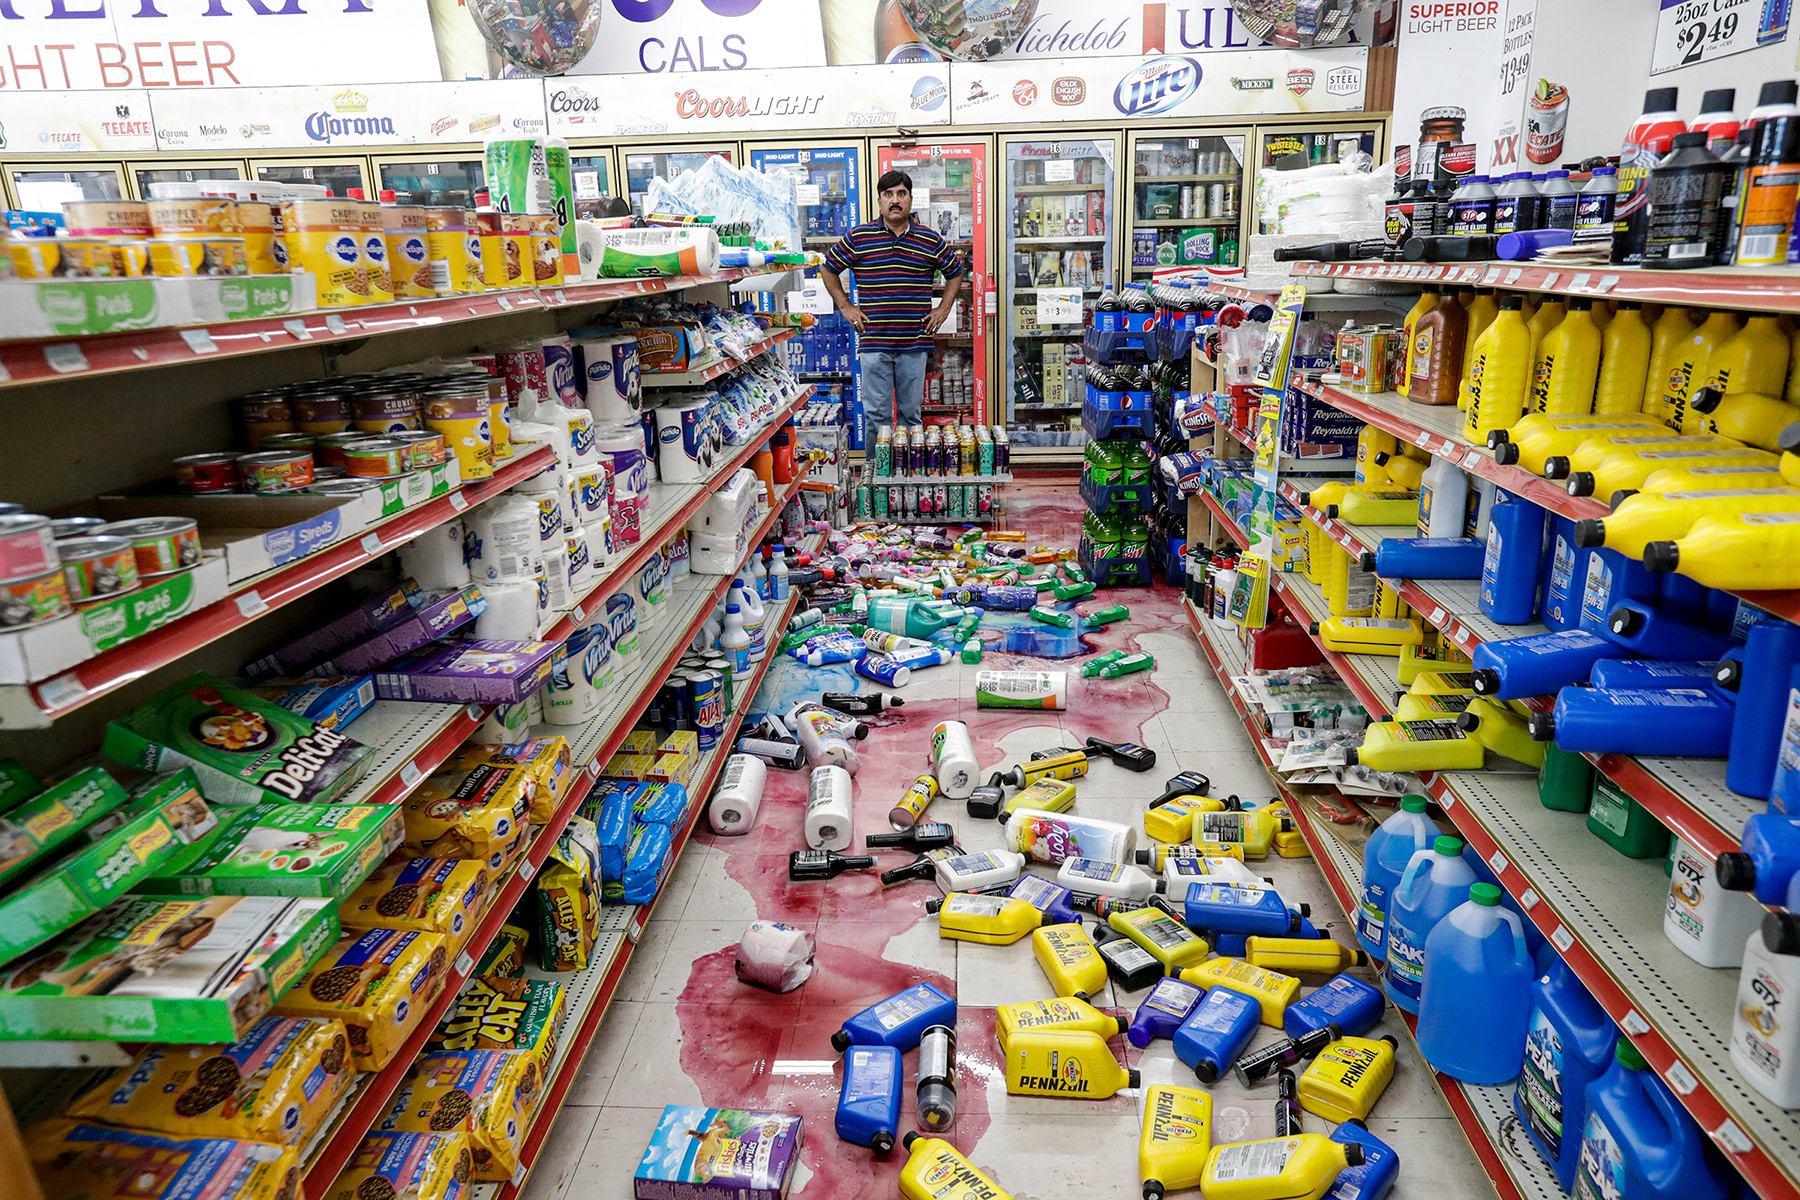 Javaid Waseem, owner of the Minit Gas Station and retail store in Ridgecrest, California, surveys damage from a July 5 earthquake, the second of two quakes. Photo: Irfan Khan/Los Angeles Times via Getty Images